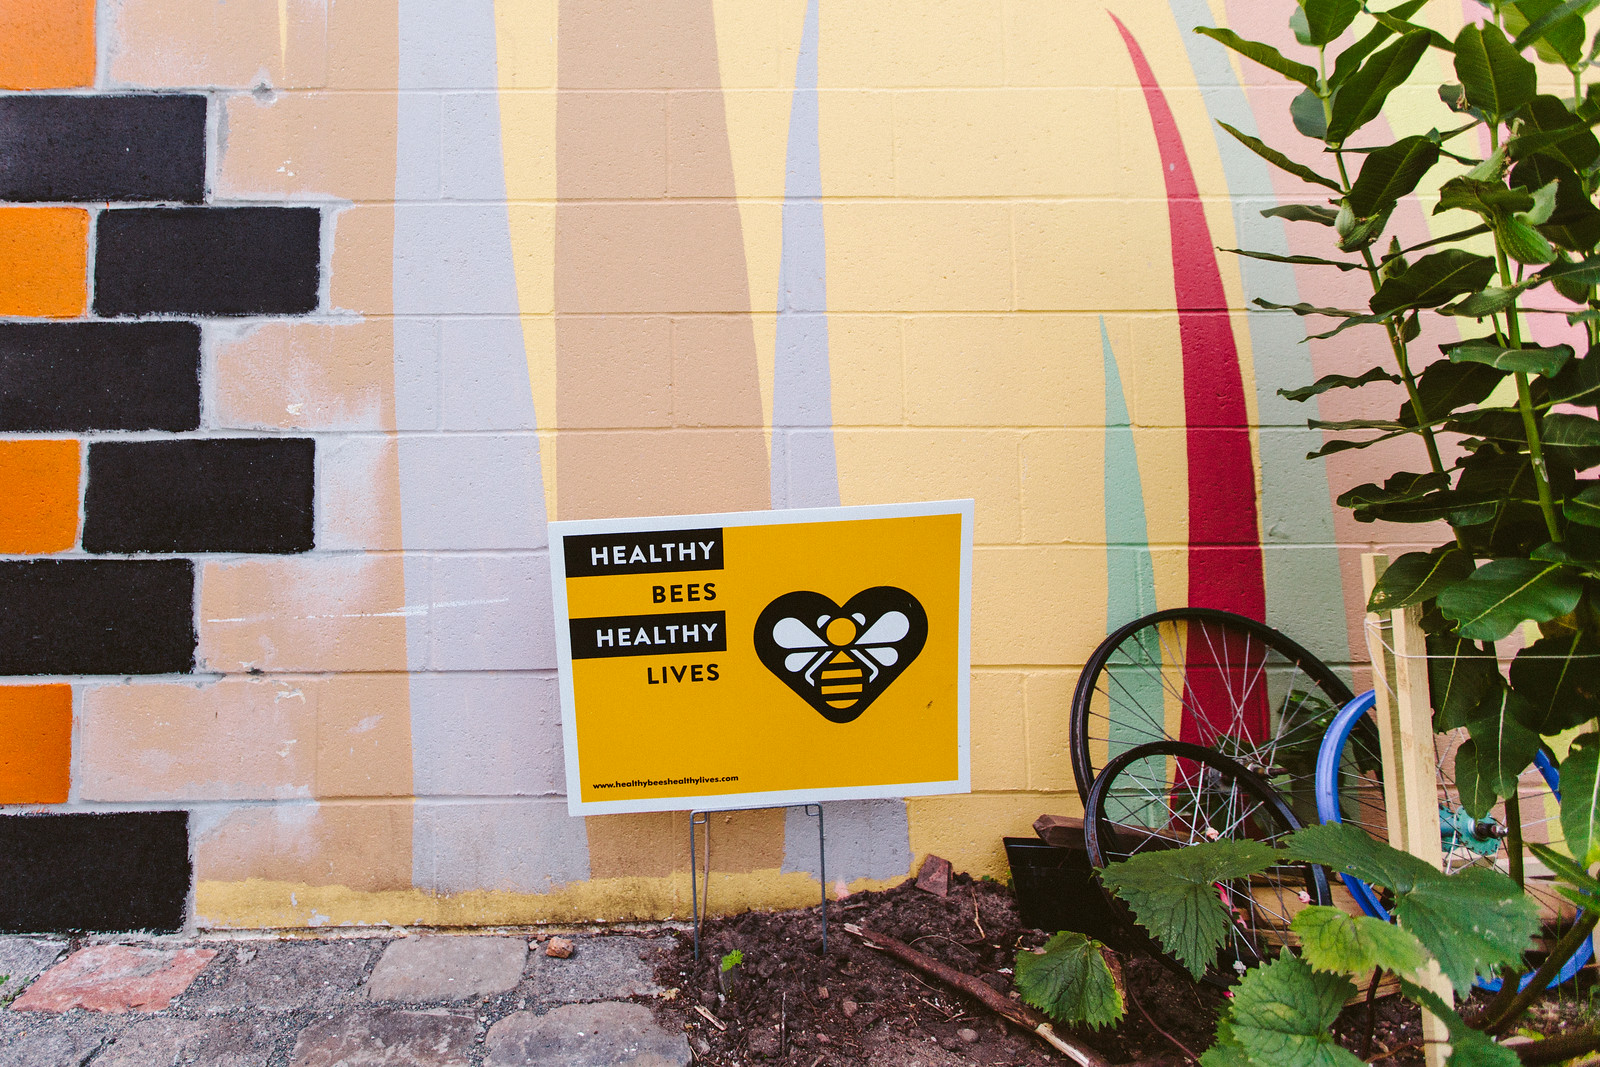 Healthy Bees Healthy Lives yard sign.